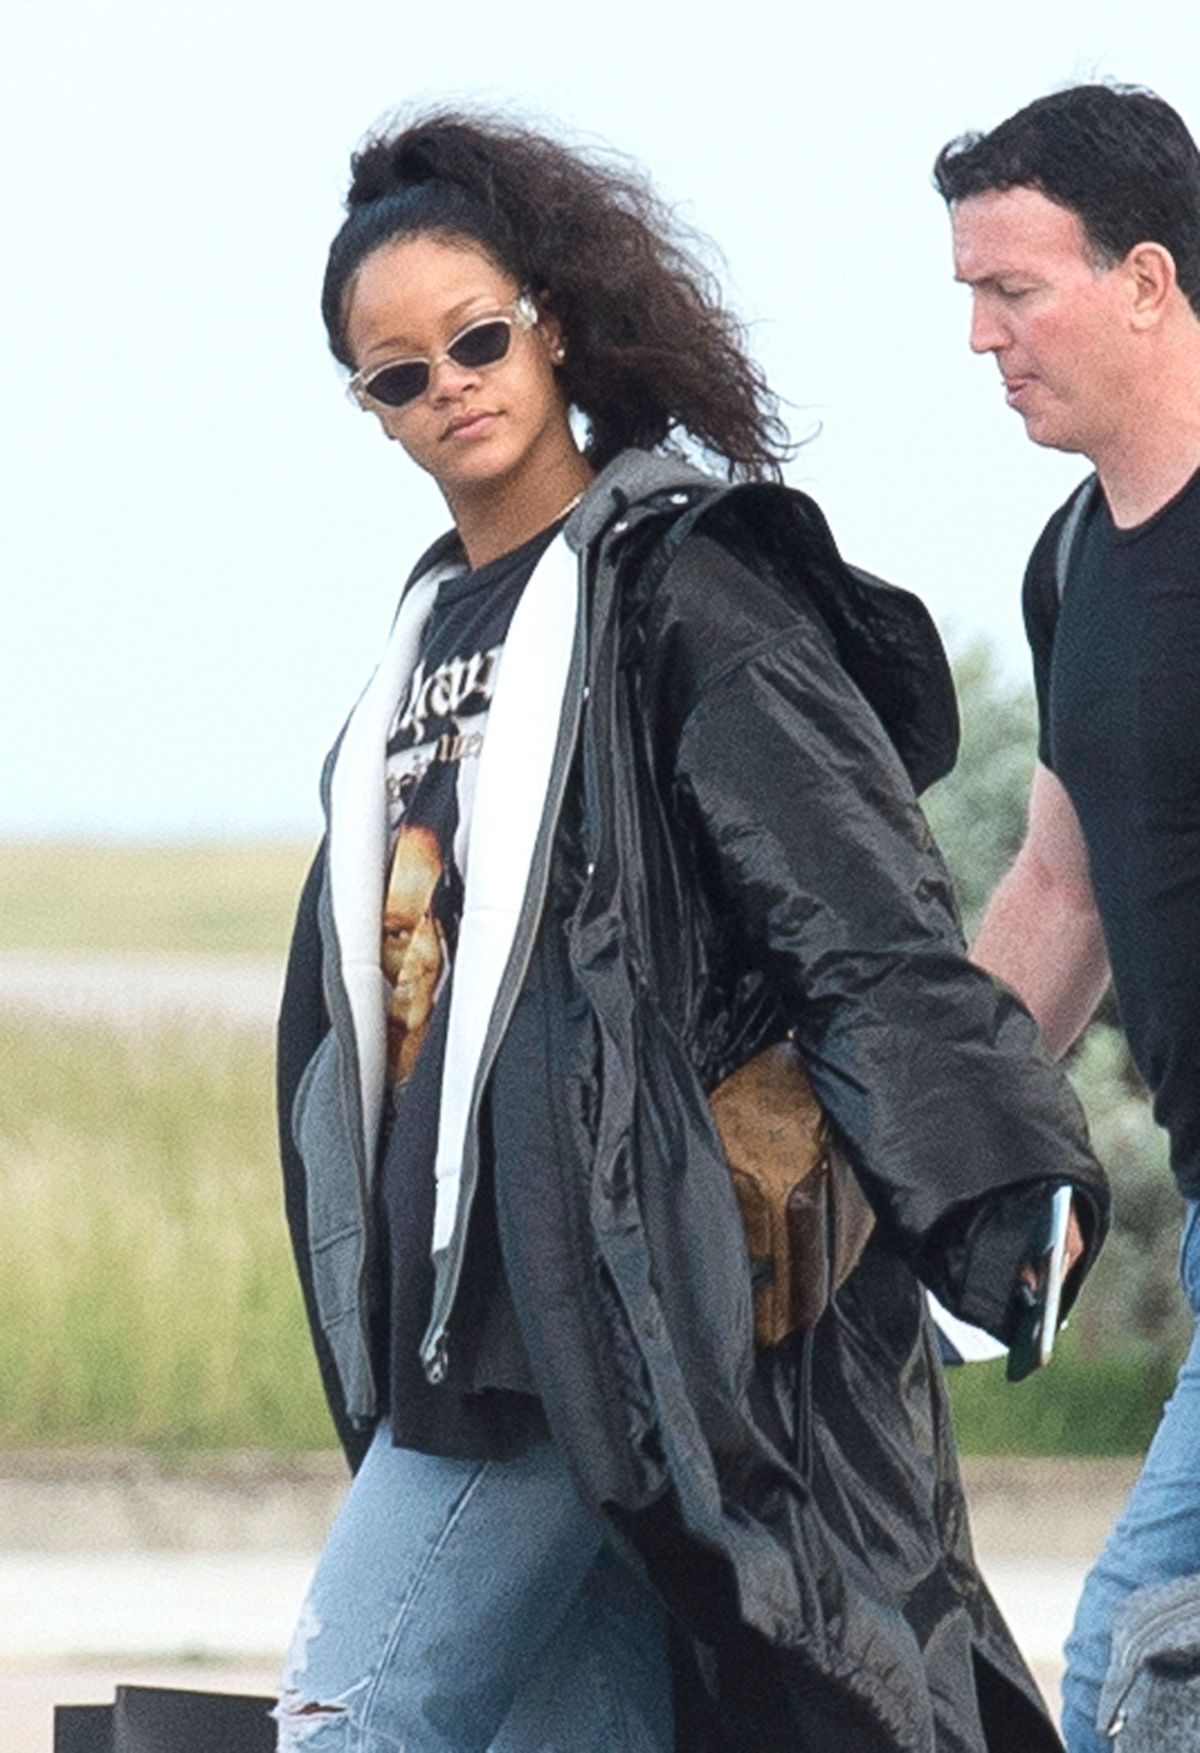 RIHANNA Landing in Barbados on a Private Jet from Los Angeles 12/23/2016